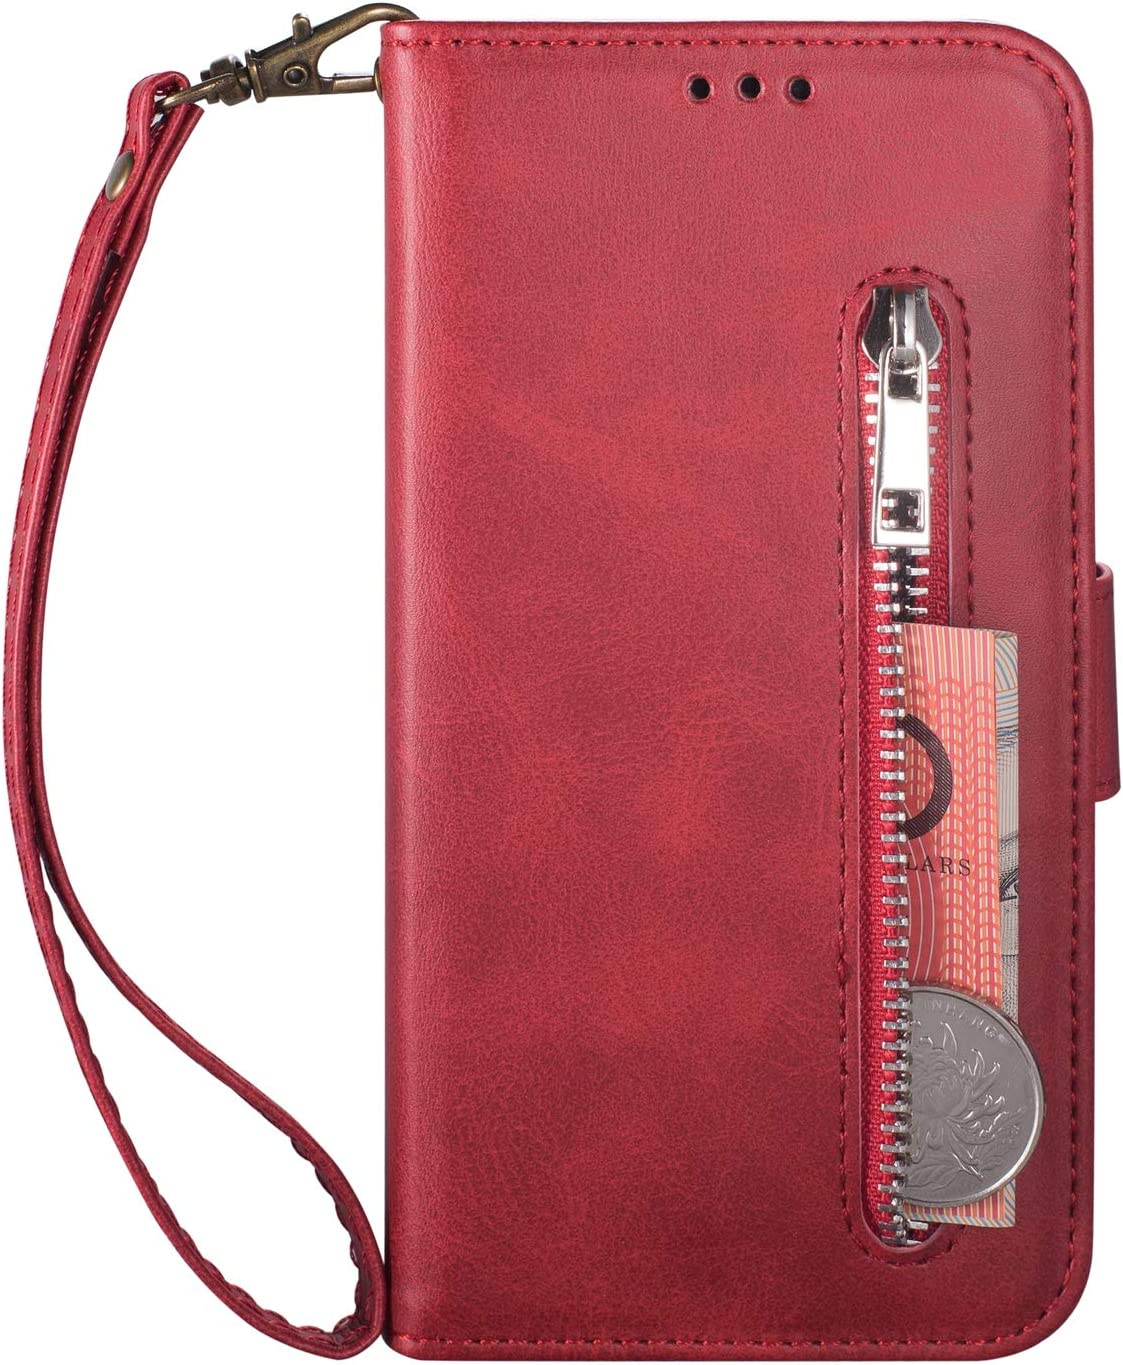 Moiky Soft PU Leather Wallet Case for Samsung Galaxy Note 9,Red Folio Flip Stand Case for Samsung Galaxy Note 9,Multifunctional Zipper Purse Cover Handbag Case with Card Holder and Wrist Strap